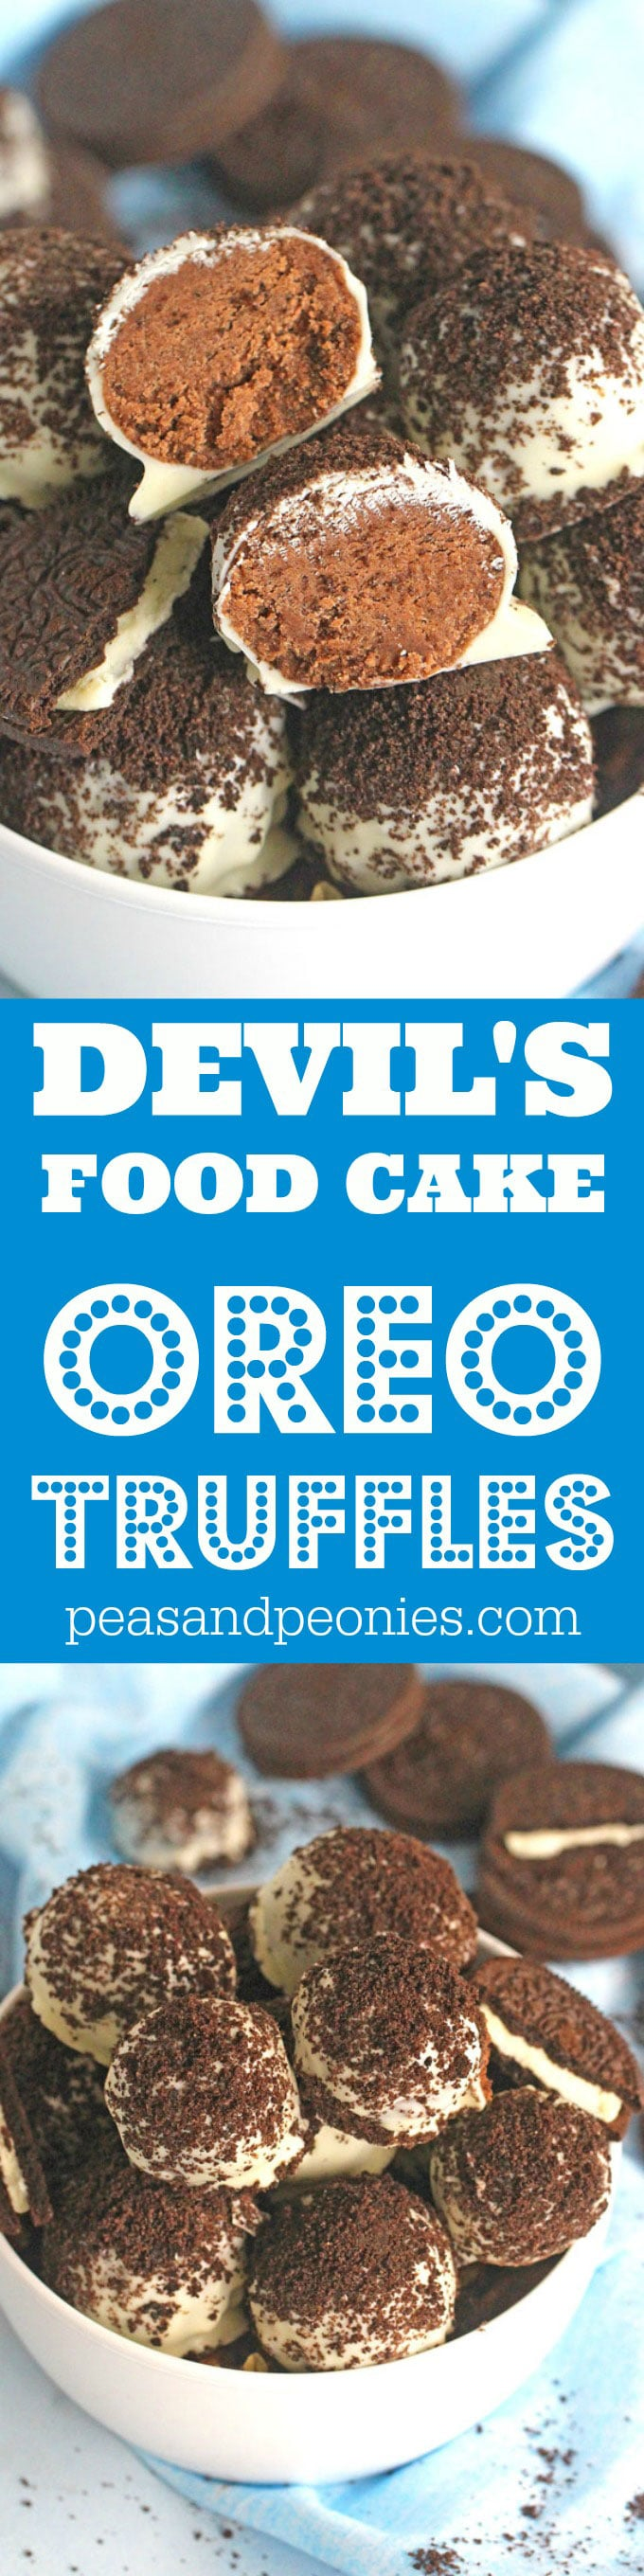 Oreo Devil's Food Cake Truffles are easy to make and no bake, loaded with chocolate cake mix, Oreos, dipped in white chocolate and topped with Oreo crumbs.